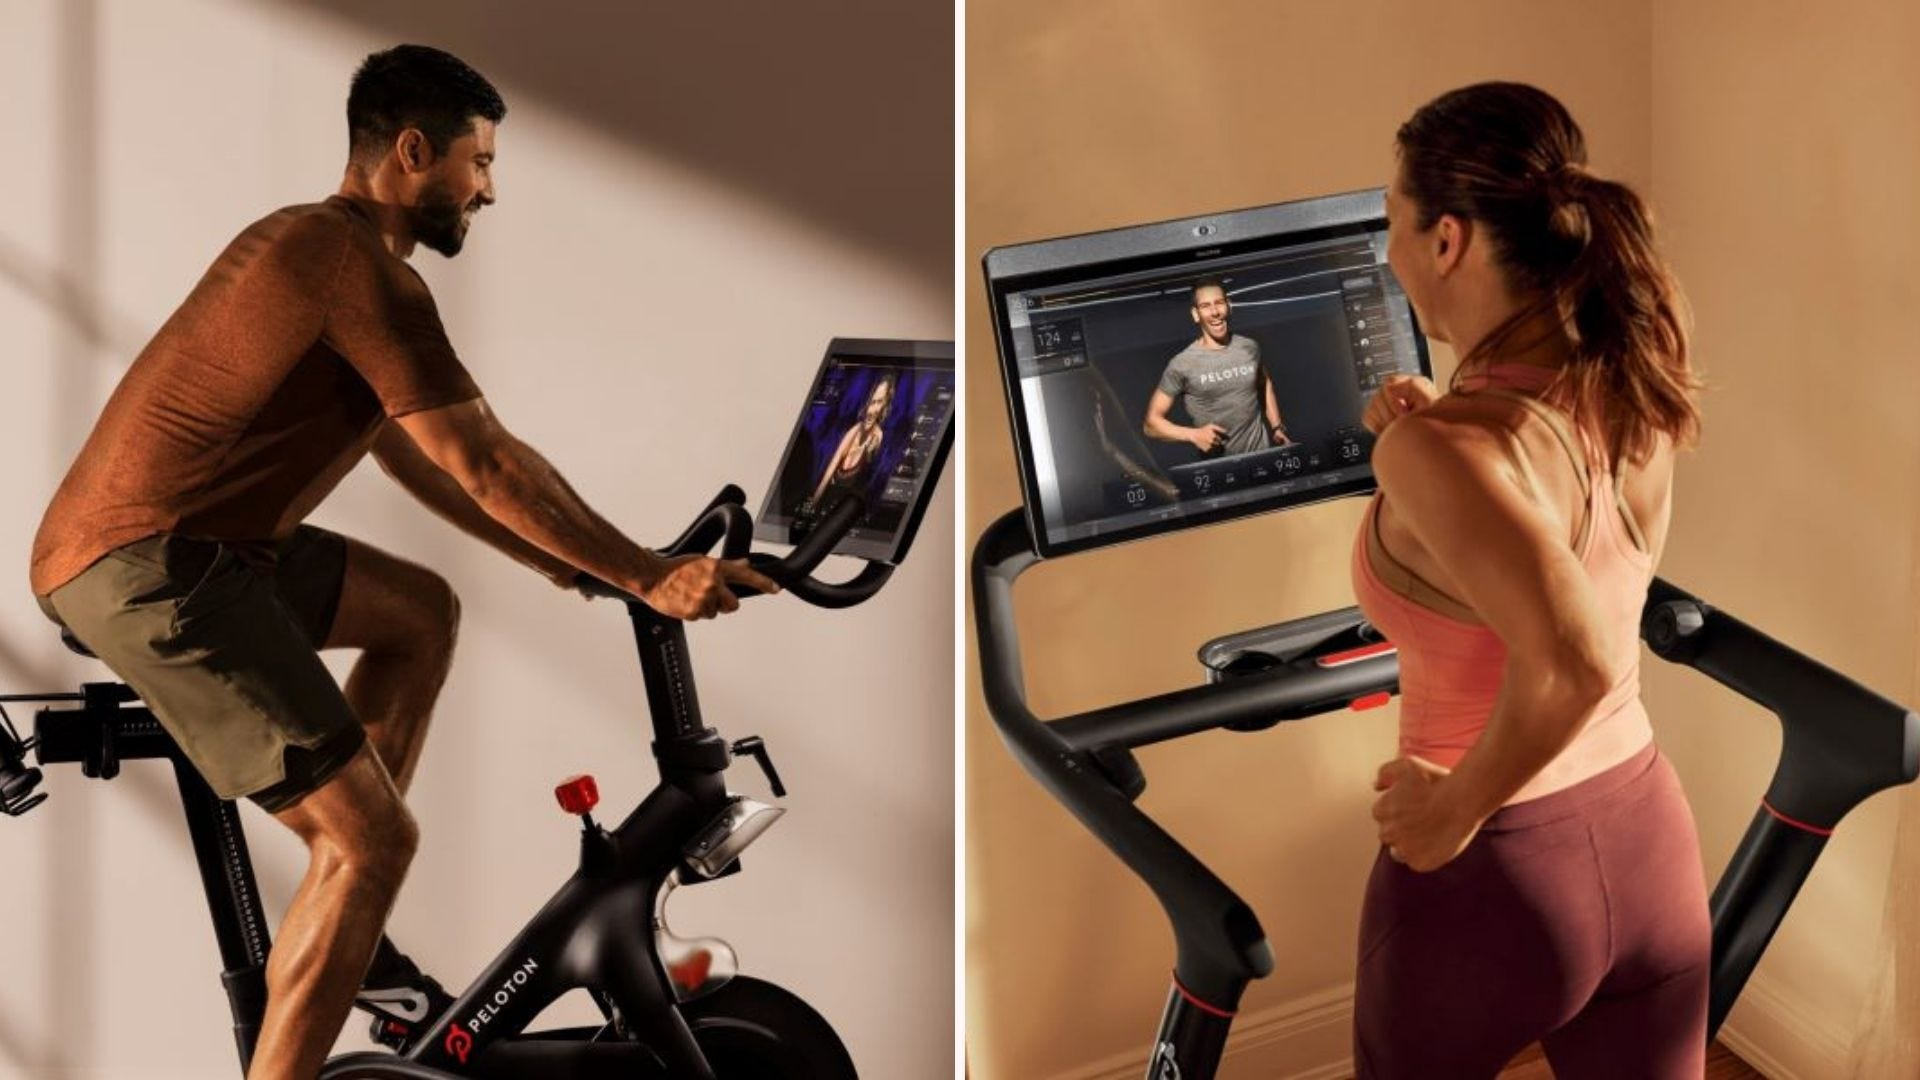 A man and woman cycling at home on Pelotons.